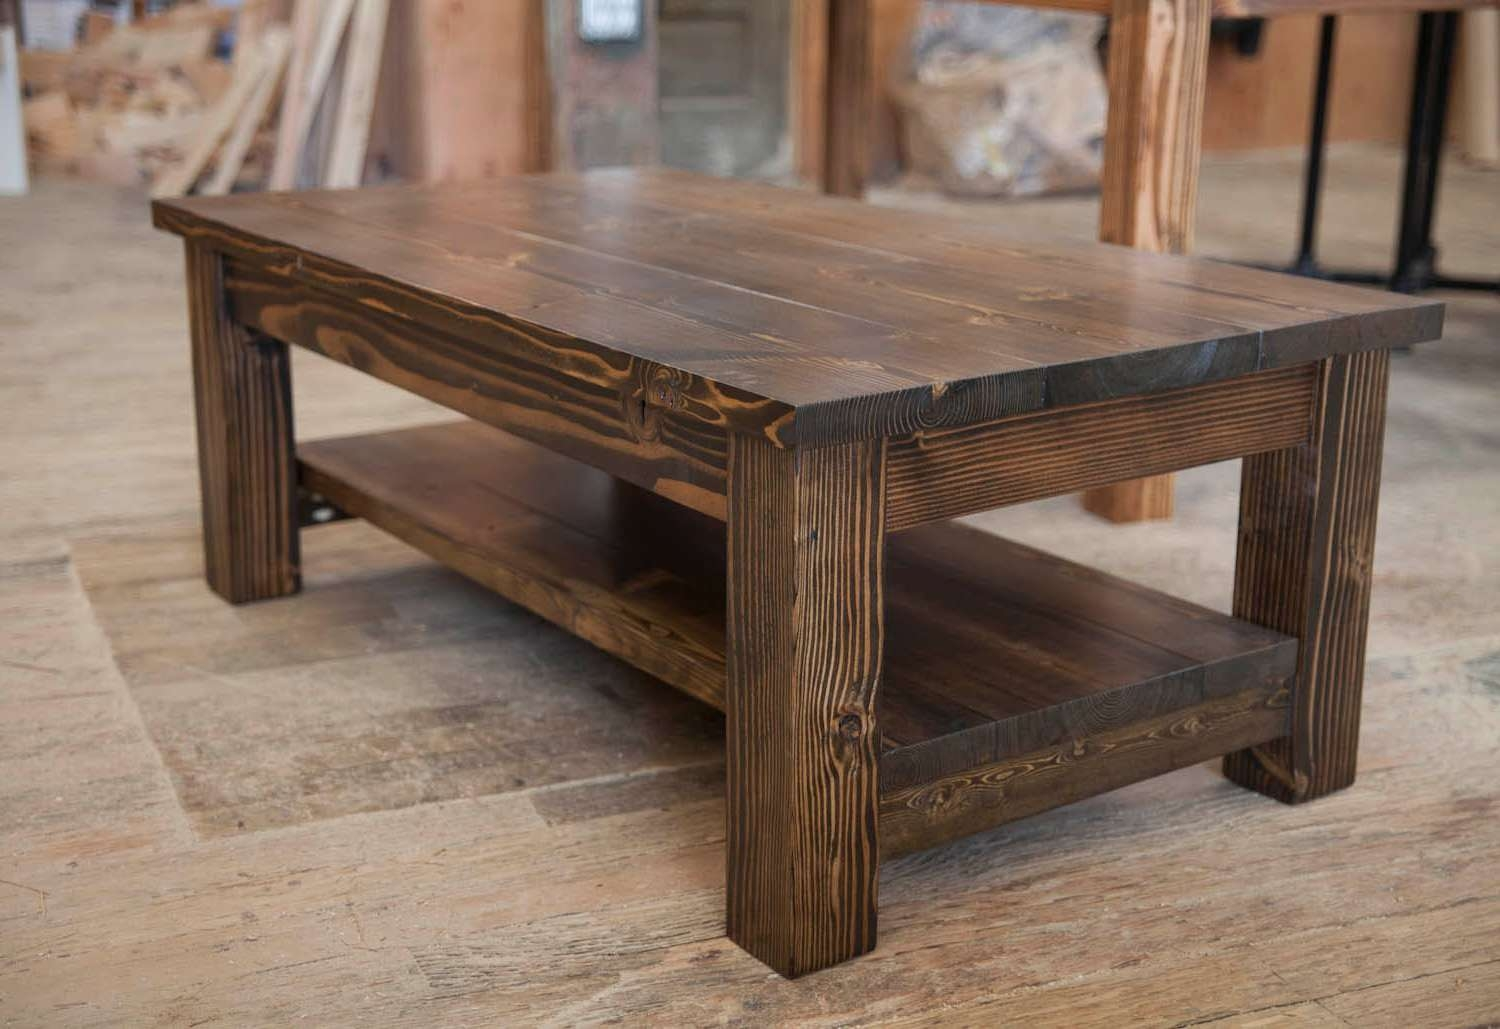 Coffee Tables : Solid Wood Coffee Table With Drawers Rustic Wooden Inside Well Known Extra Large Rustic Coffee Tables (View 3 of 20)